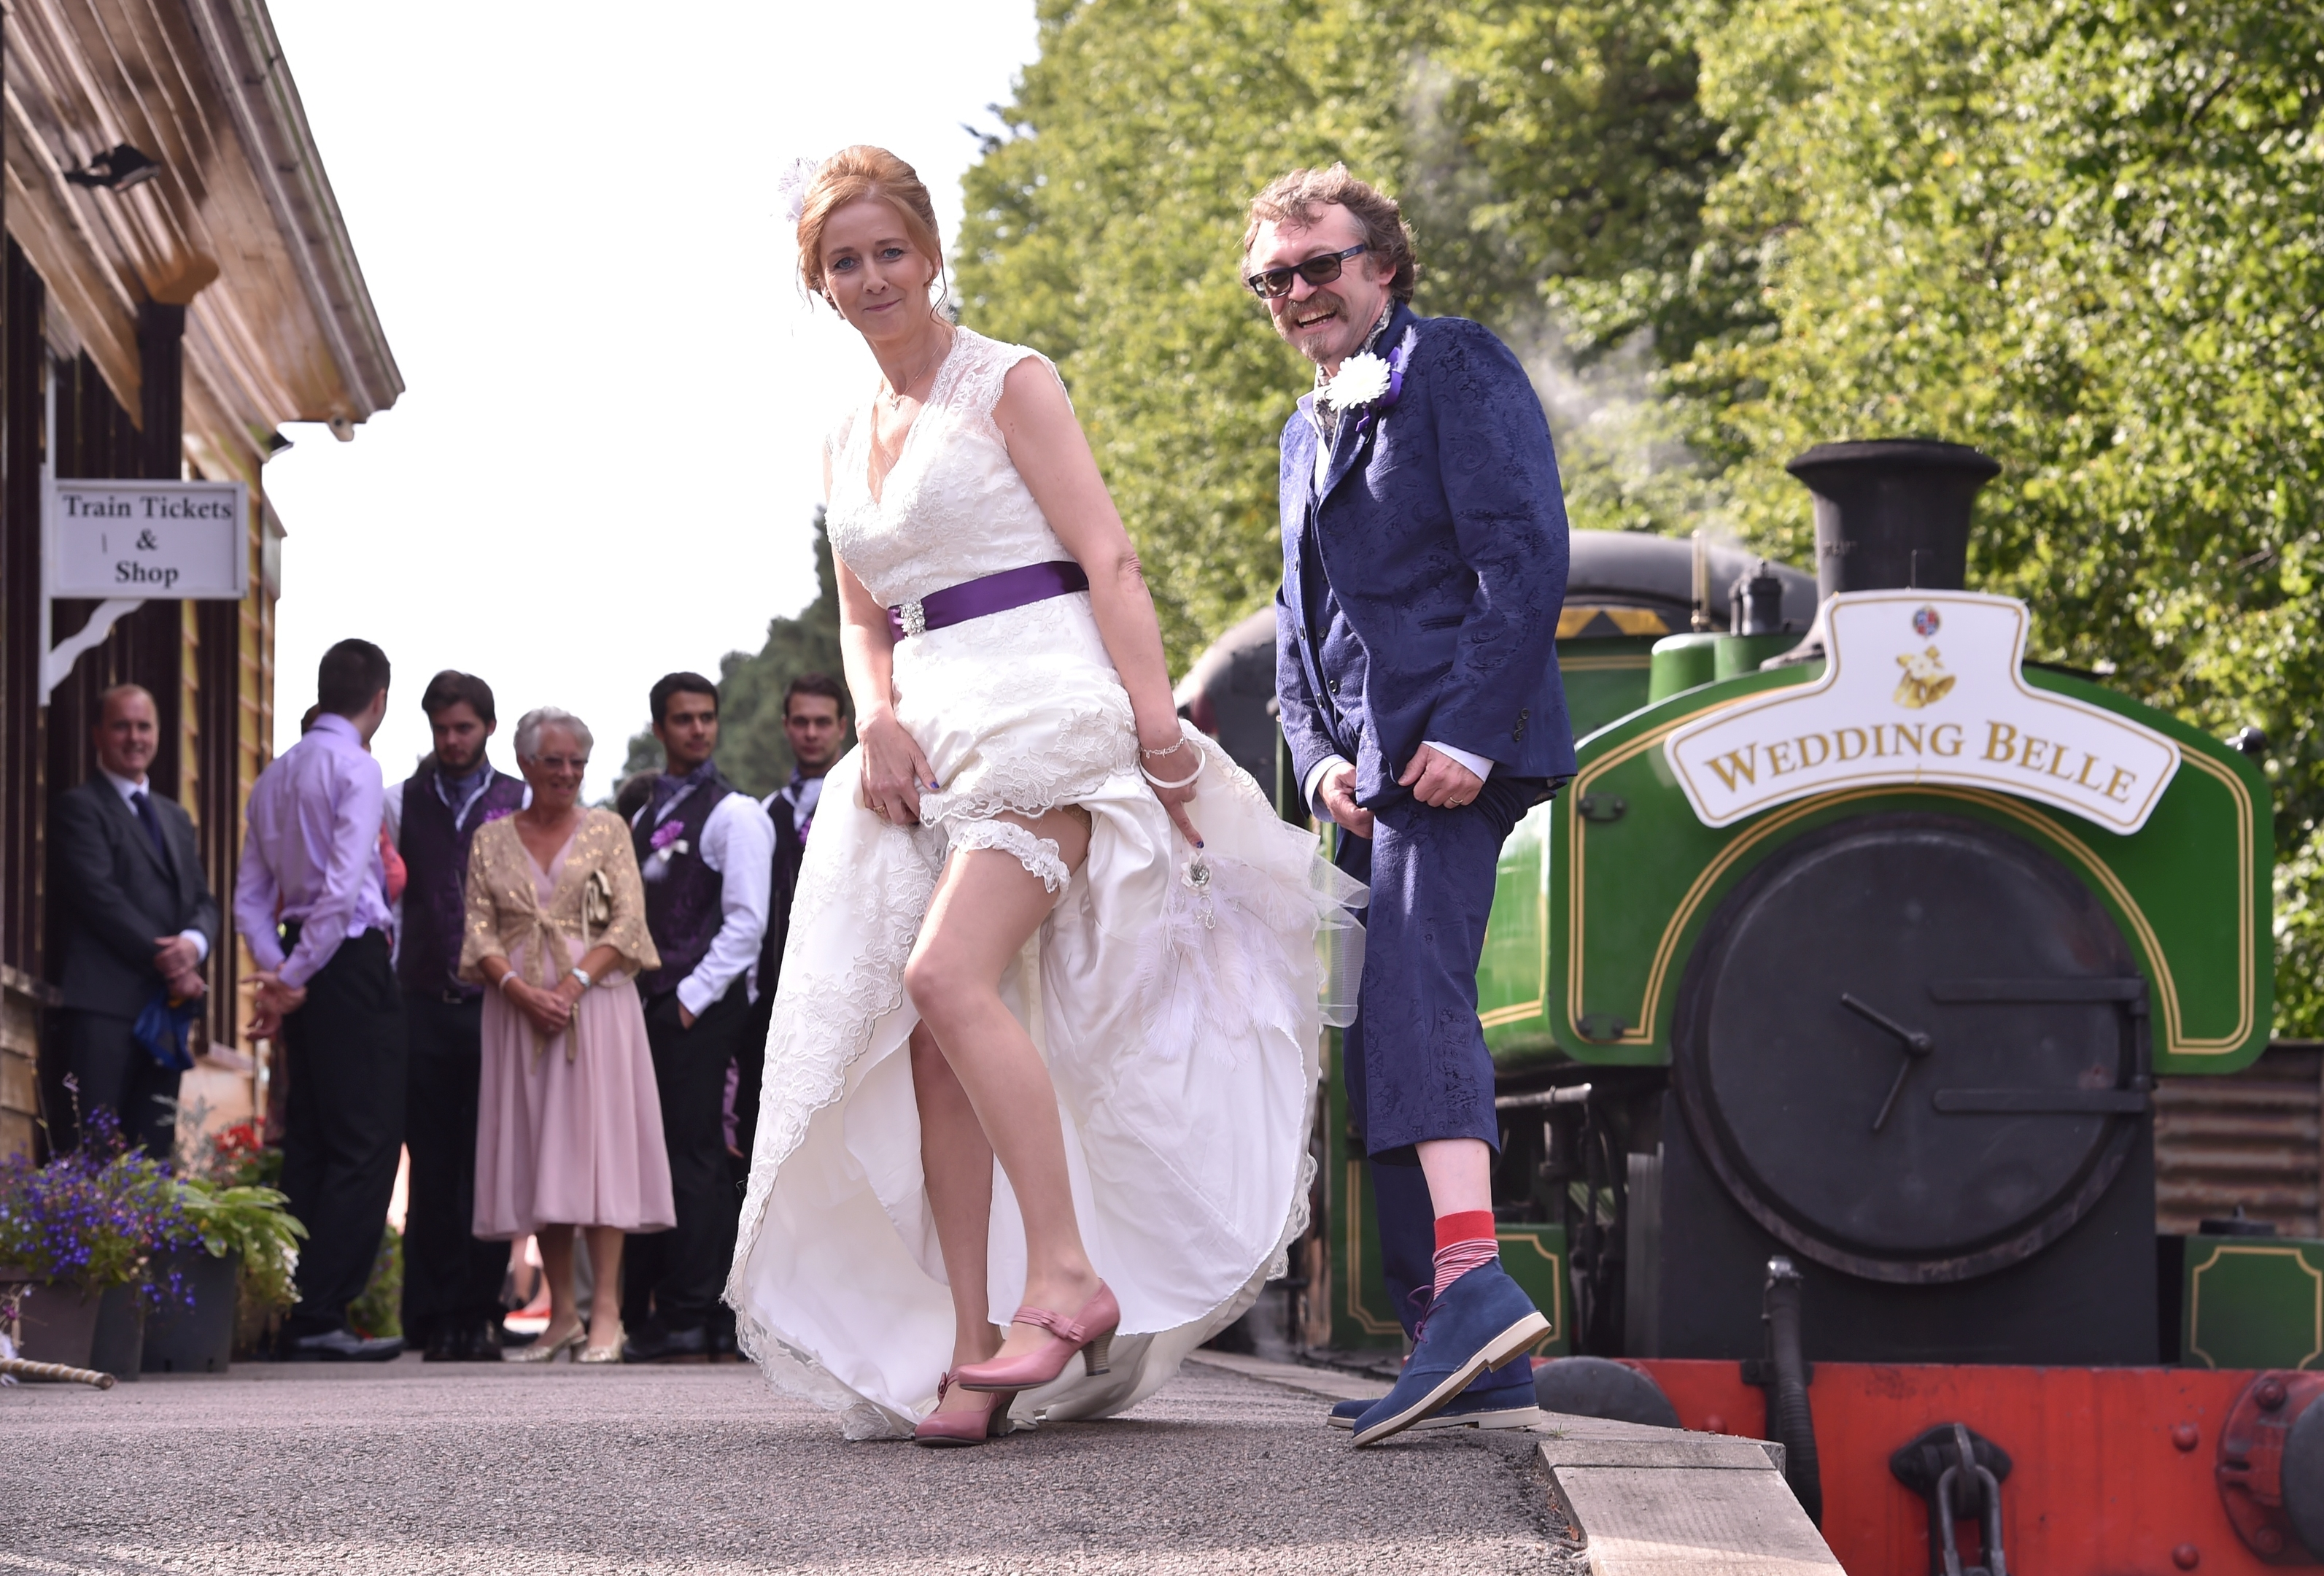 Milton of Crathes Station - the wedding of Shaun Allan and Carol McLaughlin had taken place on the moving carriage. Picture by COLIN RENNIE  September 10, 2015.